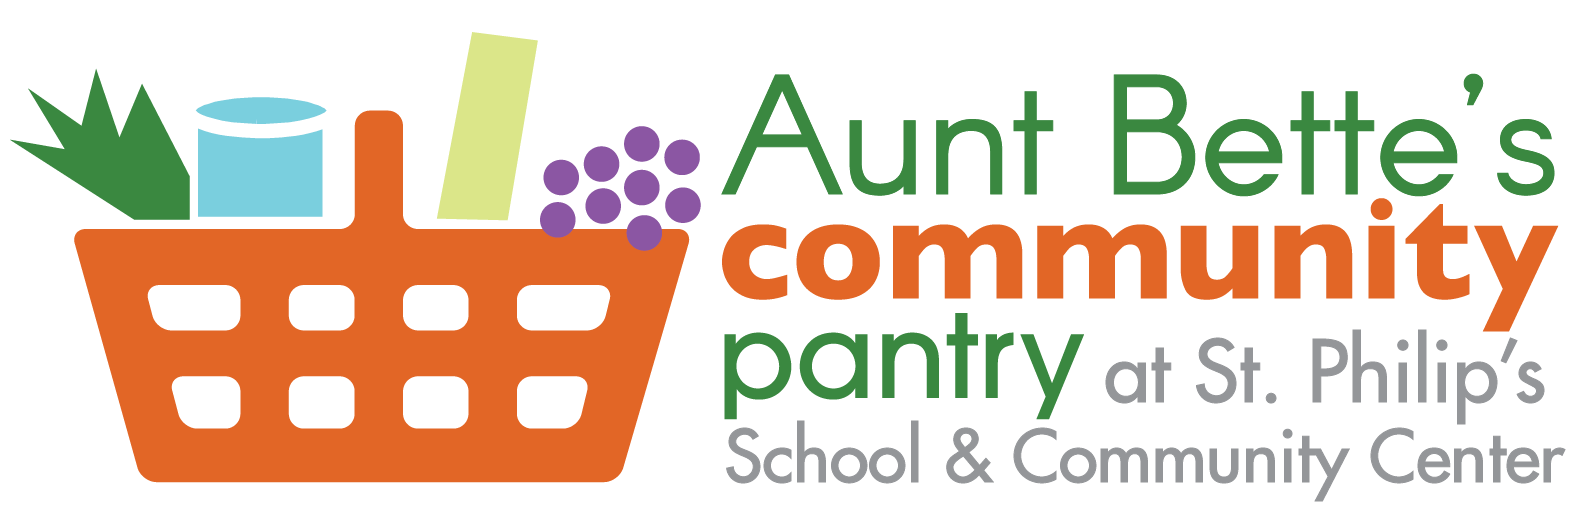 Aunt Bette's Community Pantry